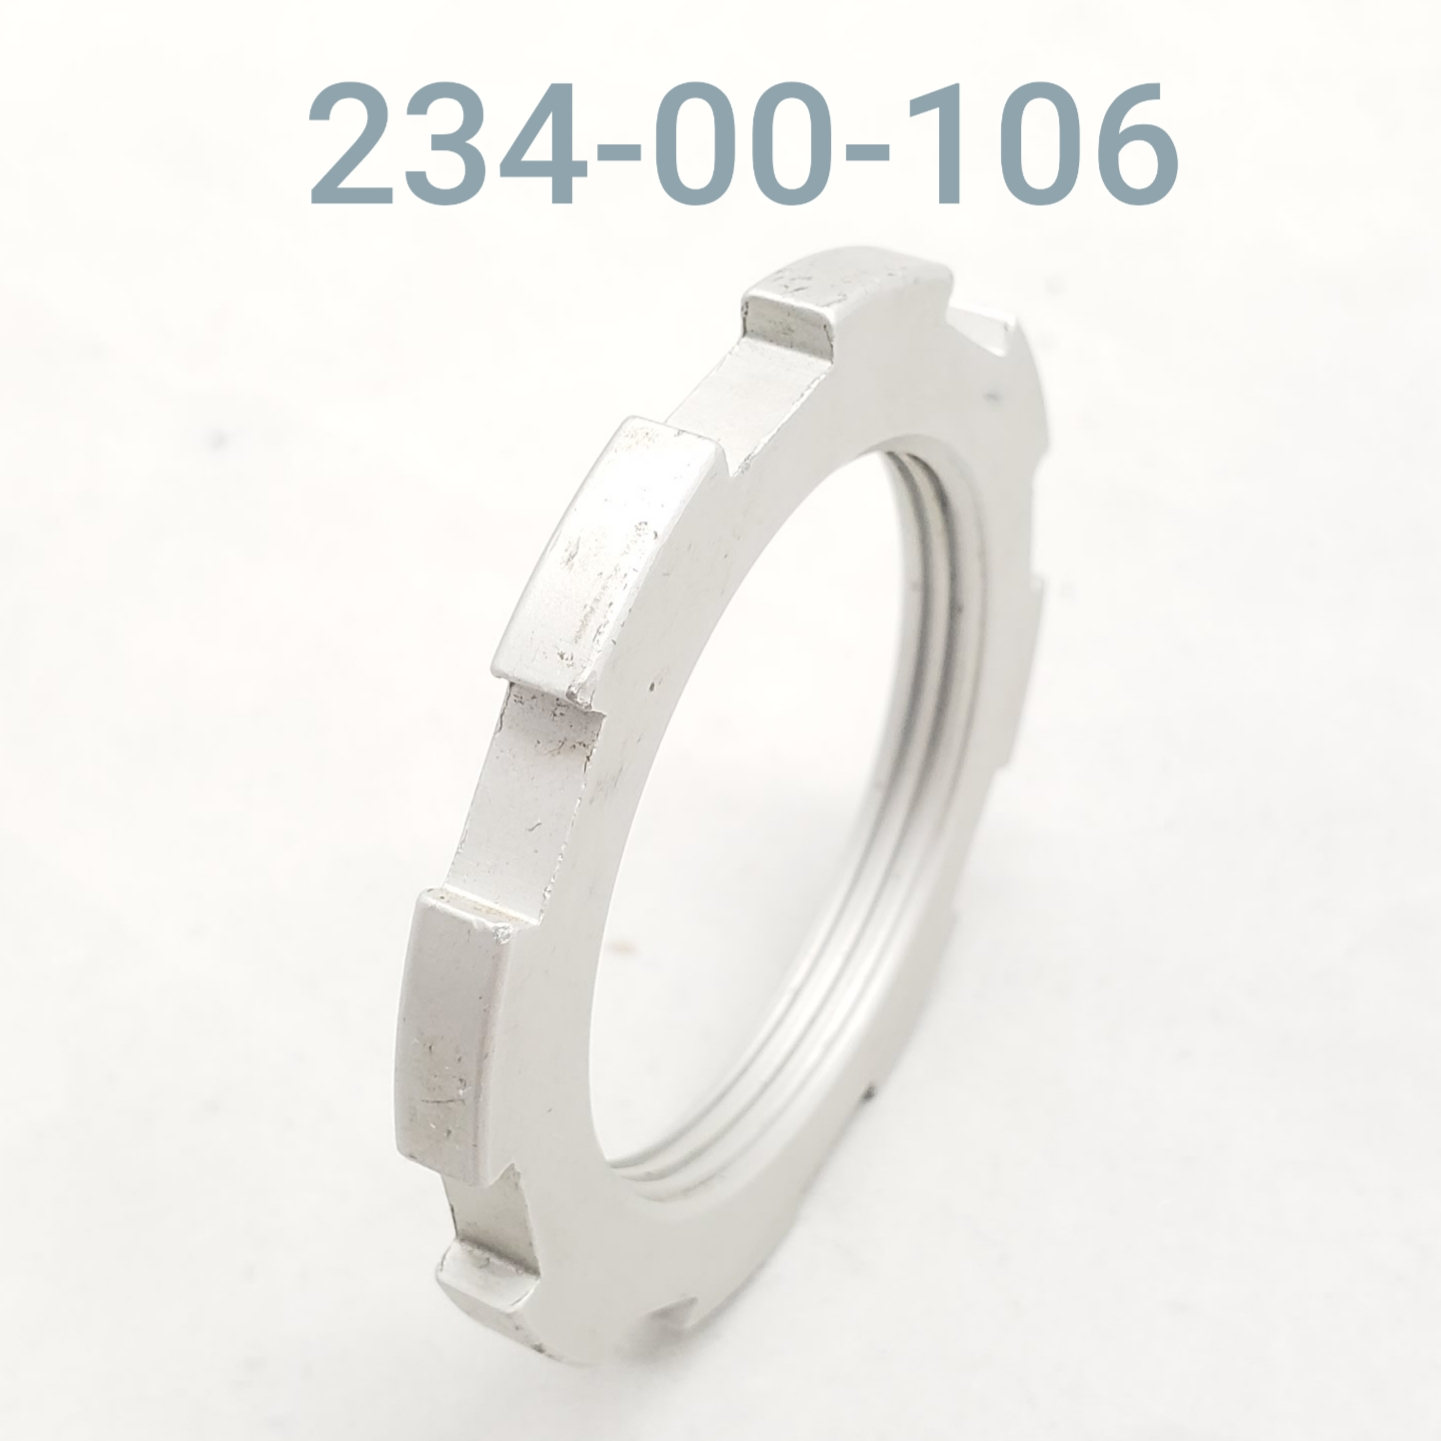 PRELOAD RING, B-U, ALUM BODY